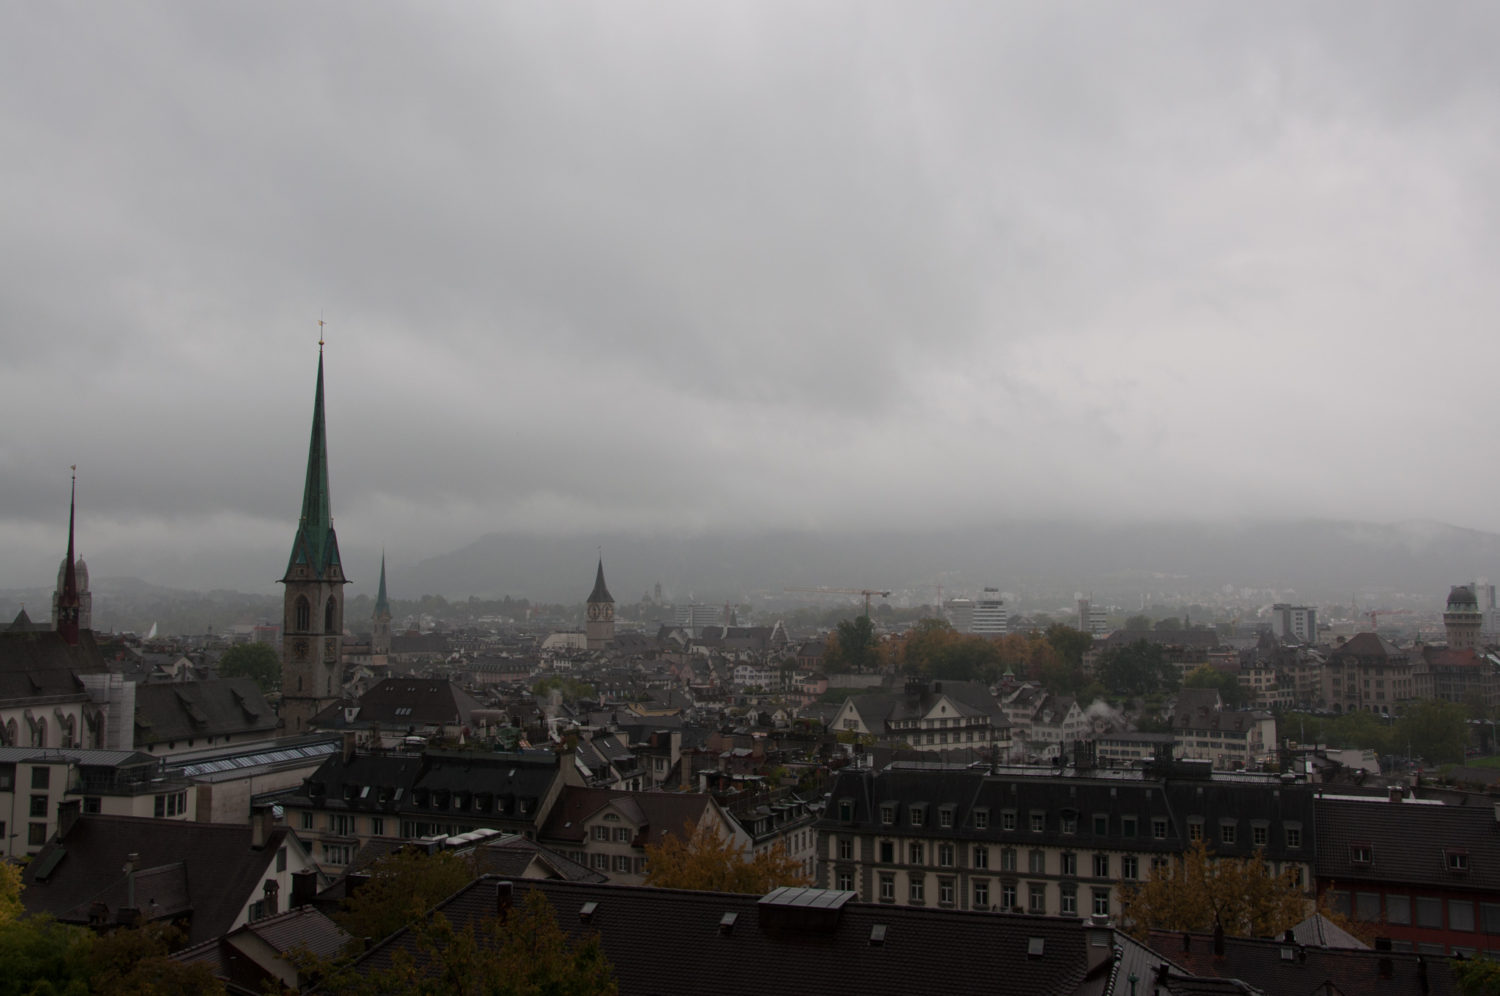 Europa, Kanton Zürich, Kreis 1, Niederdorf, Nordostschweiz, Schweiz, Zürich, _THEMES, cloud cover, clouds, district 1, natur, nature, old town, wolken, wolkendecke